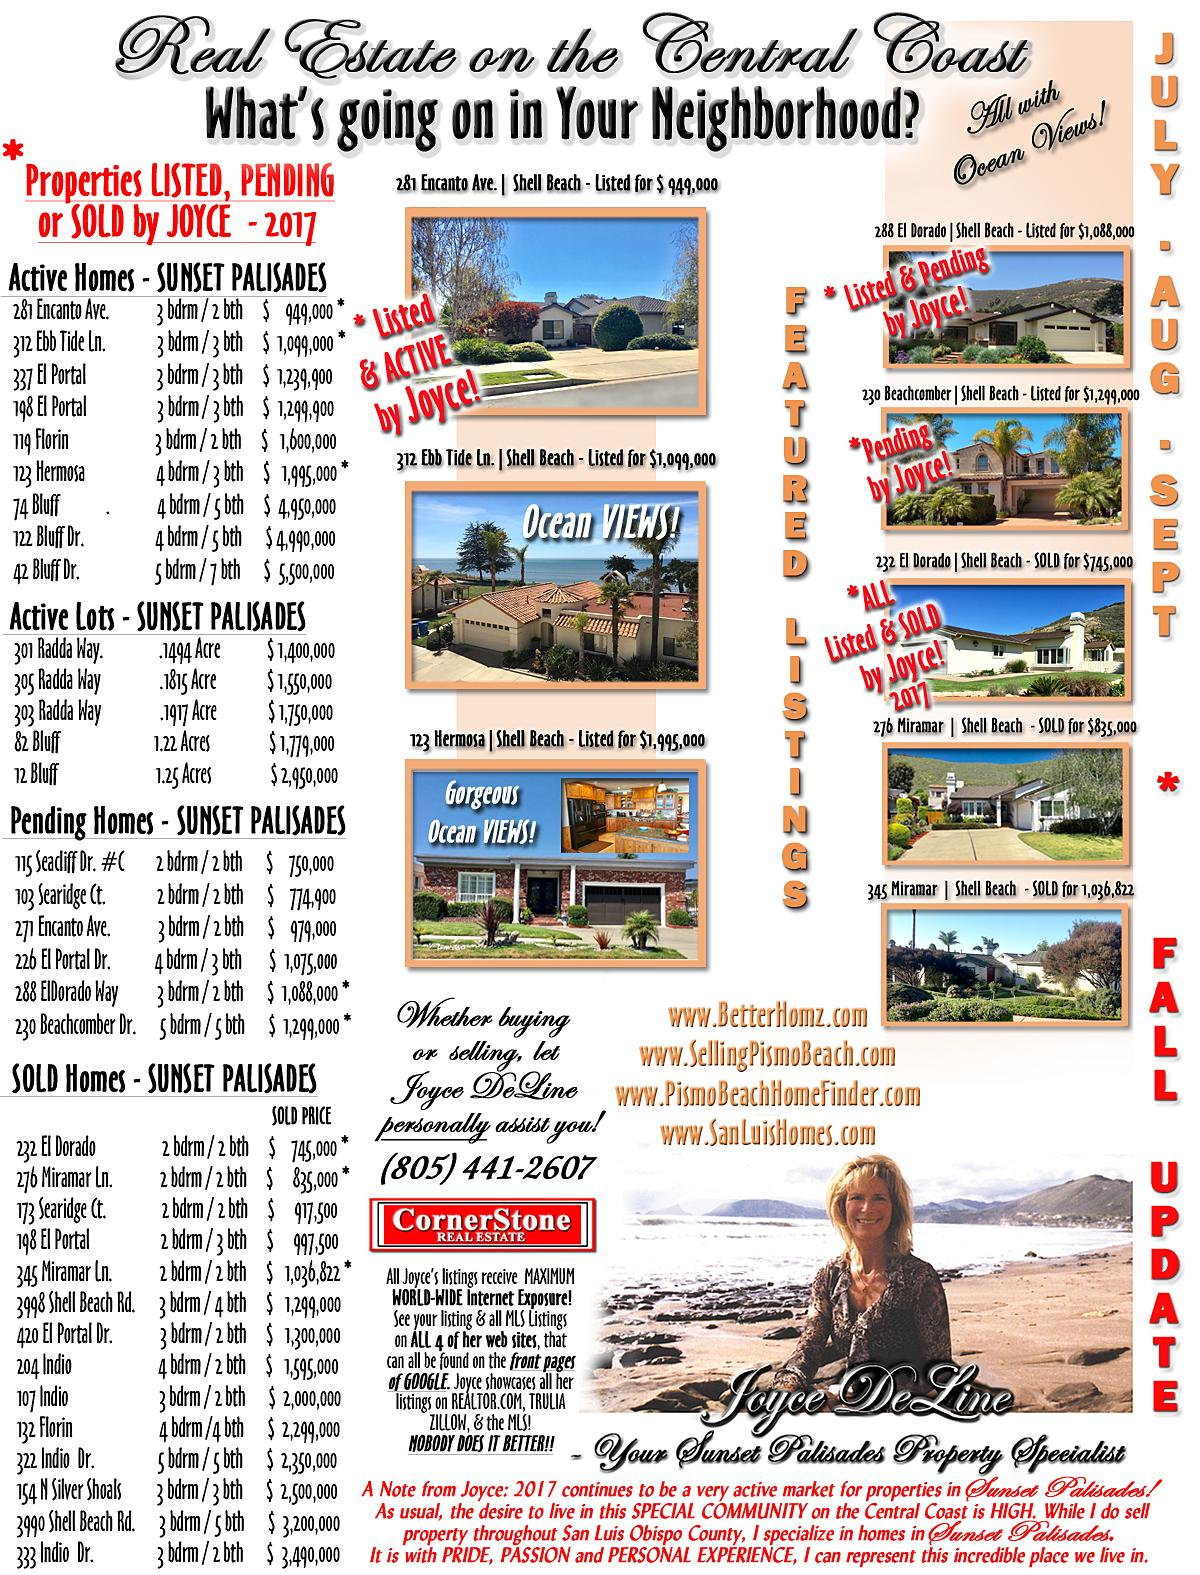 Pismo Beach Timeshare For Sale